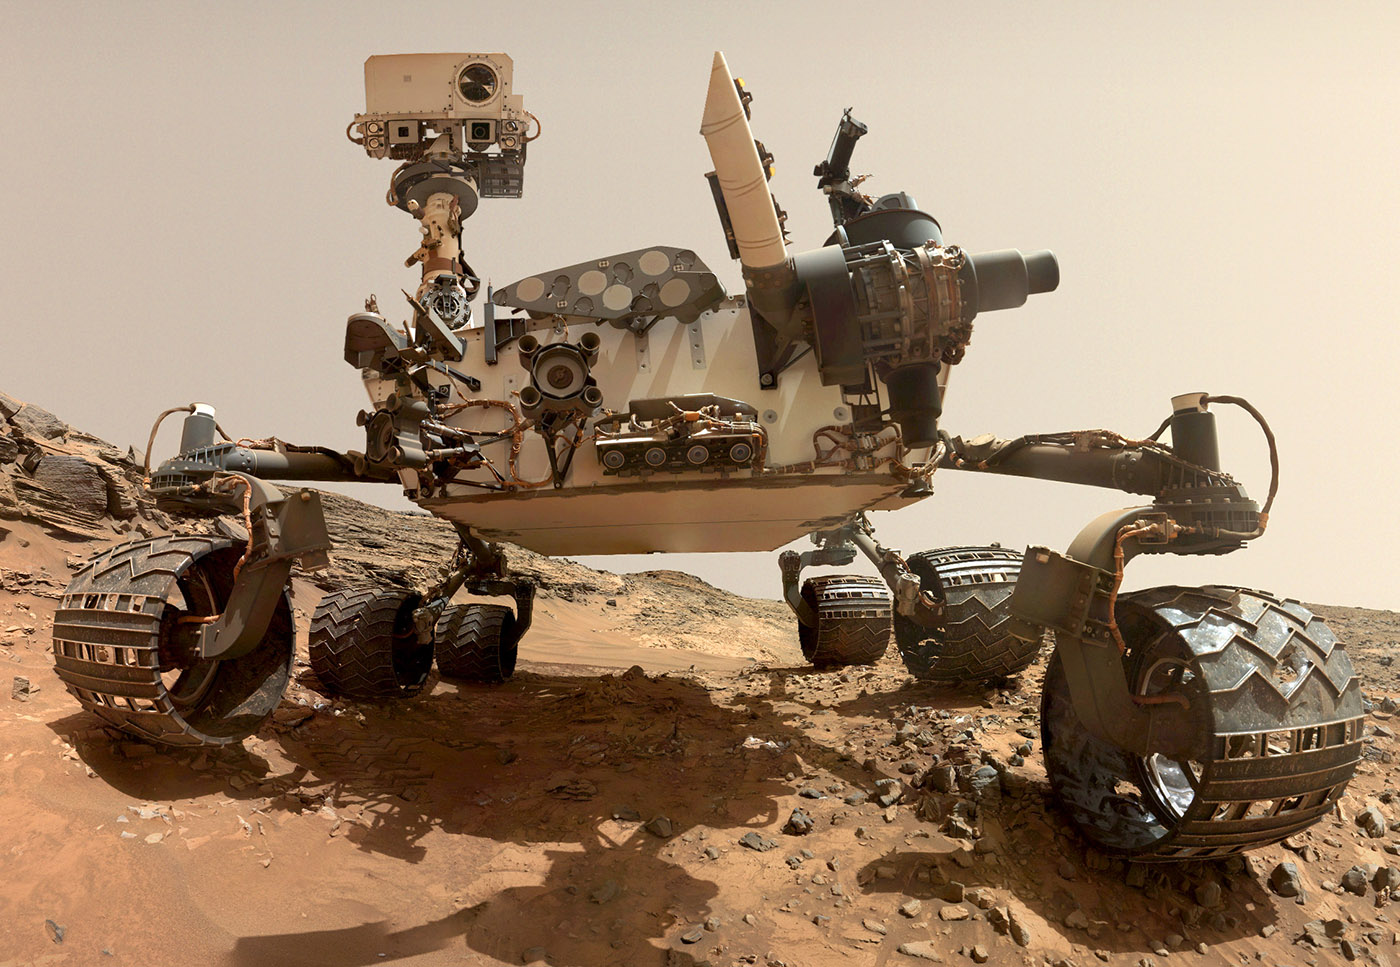 Curiosity rover portrait wide